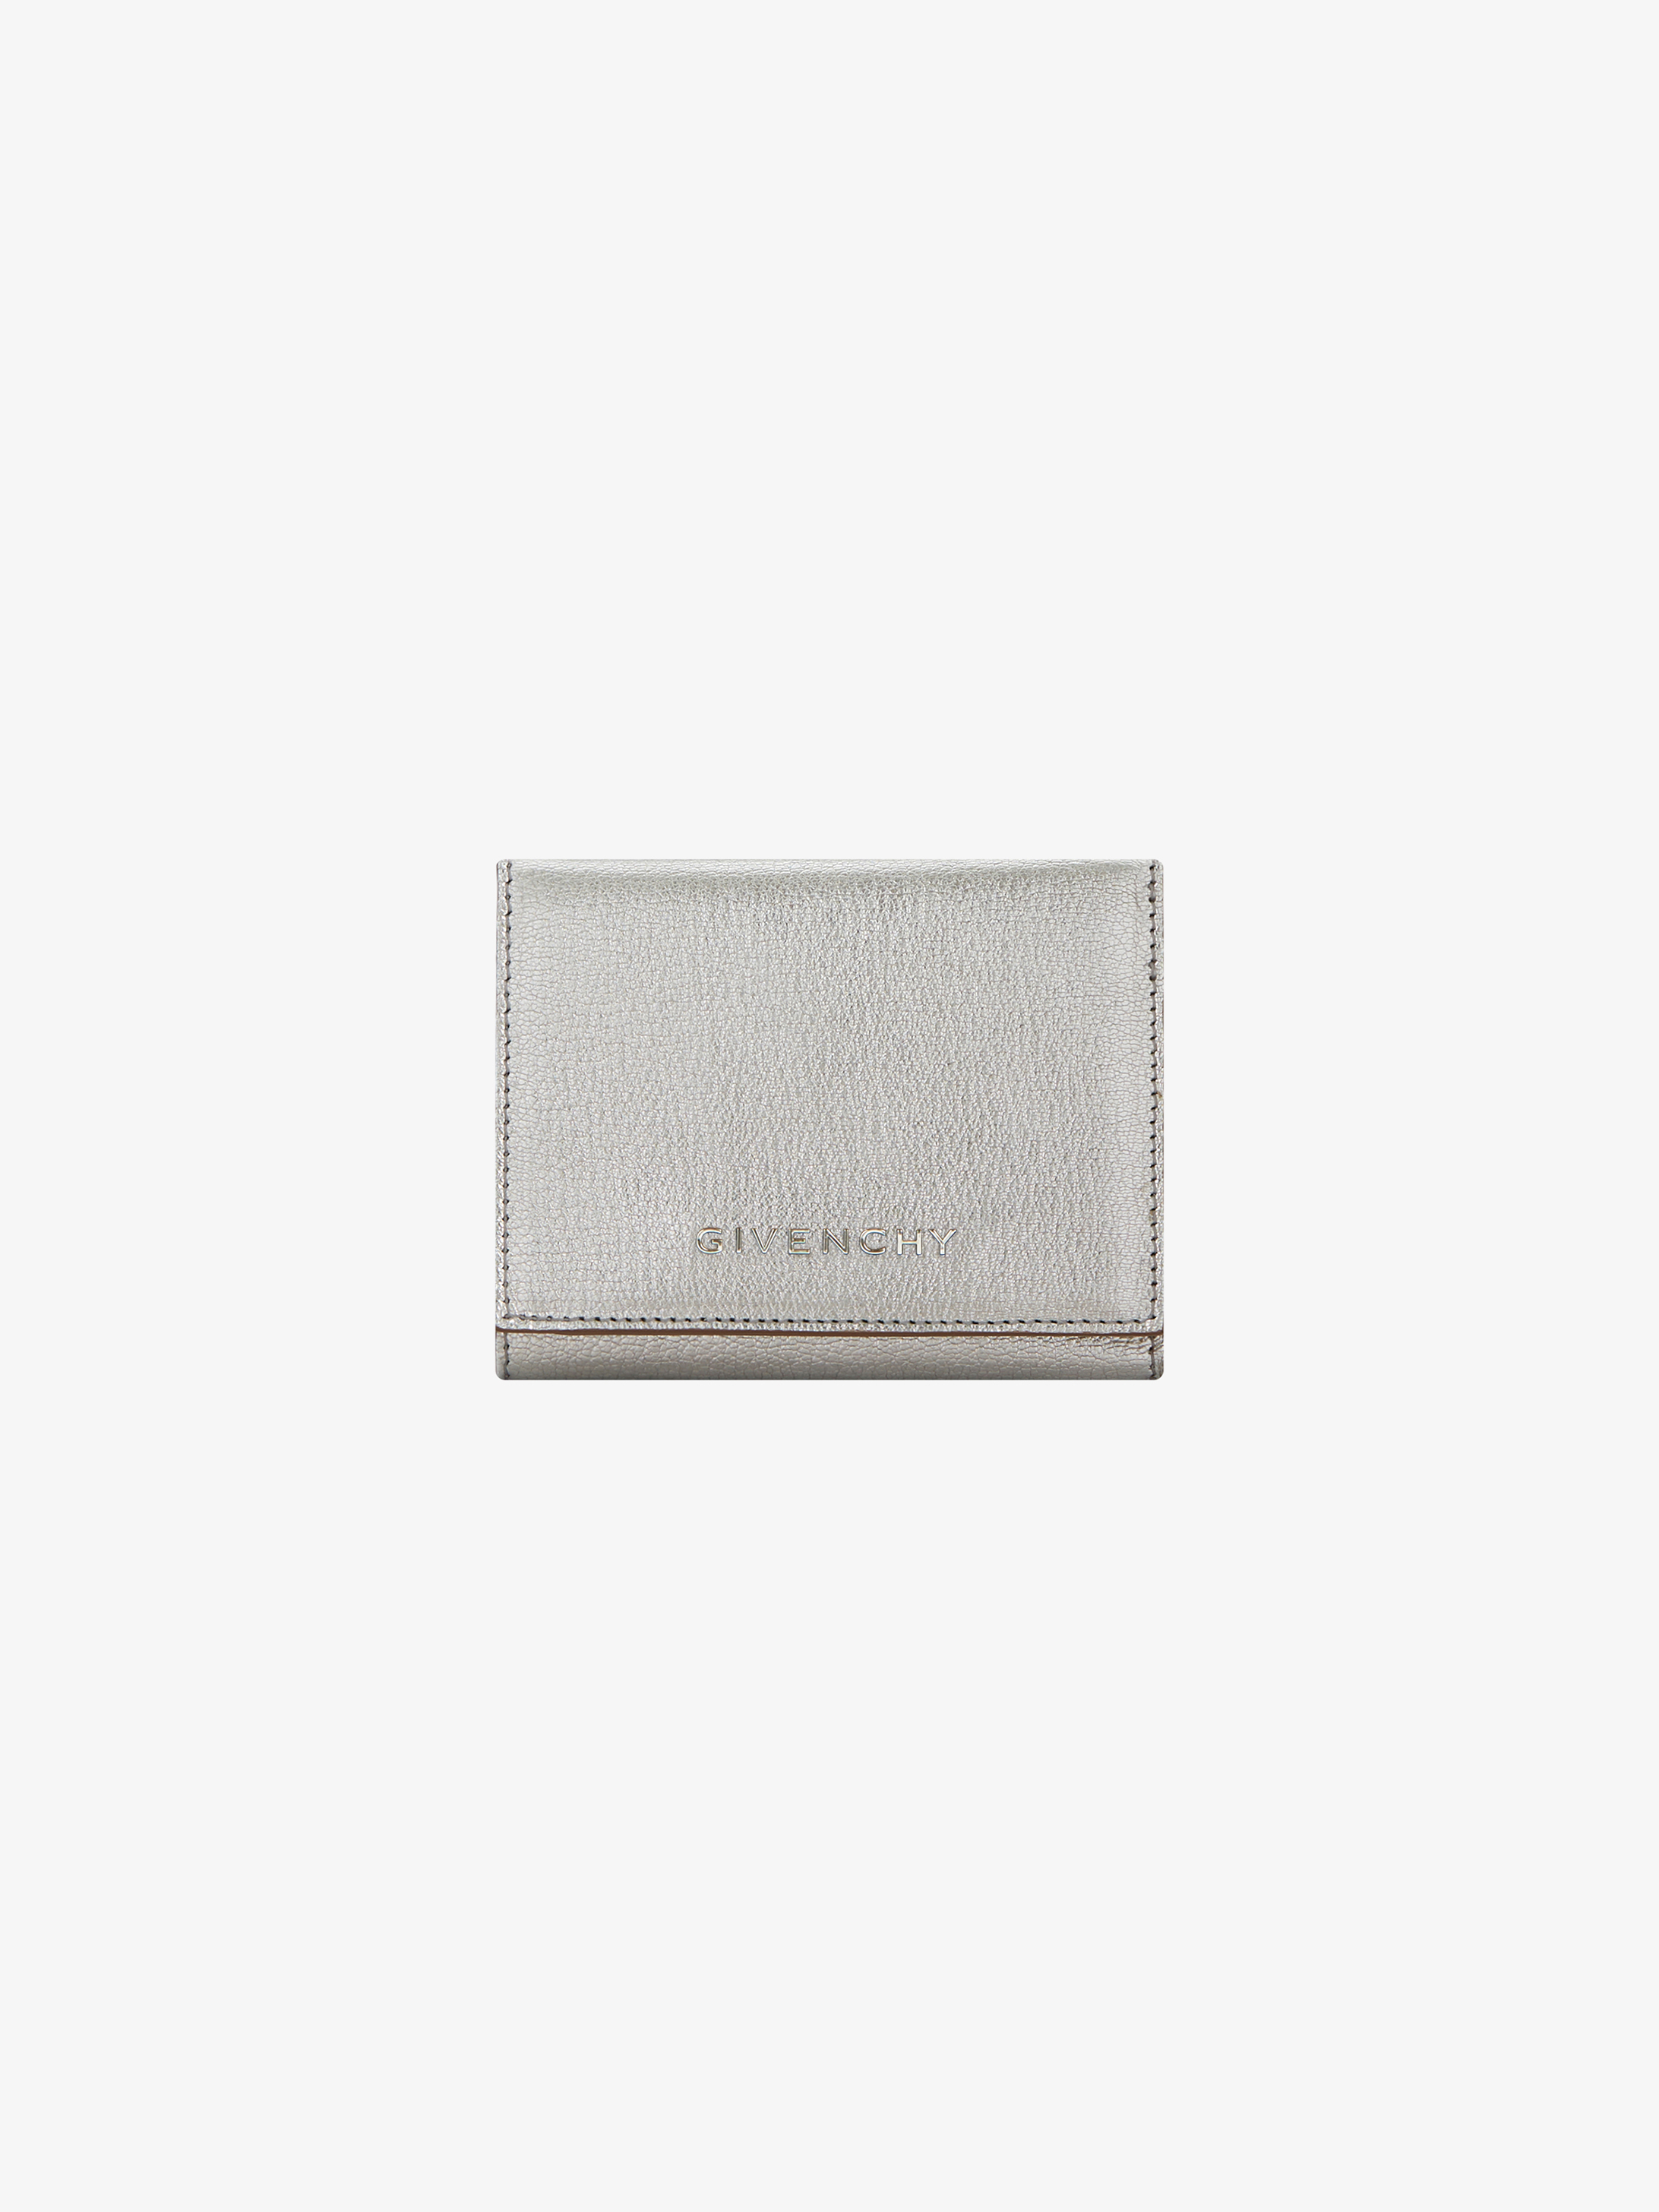 Pandora trifold wallet in leather